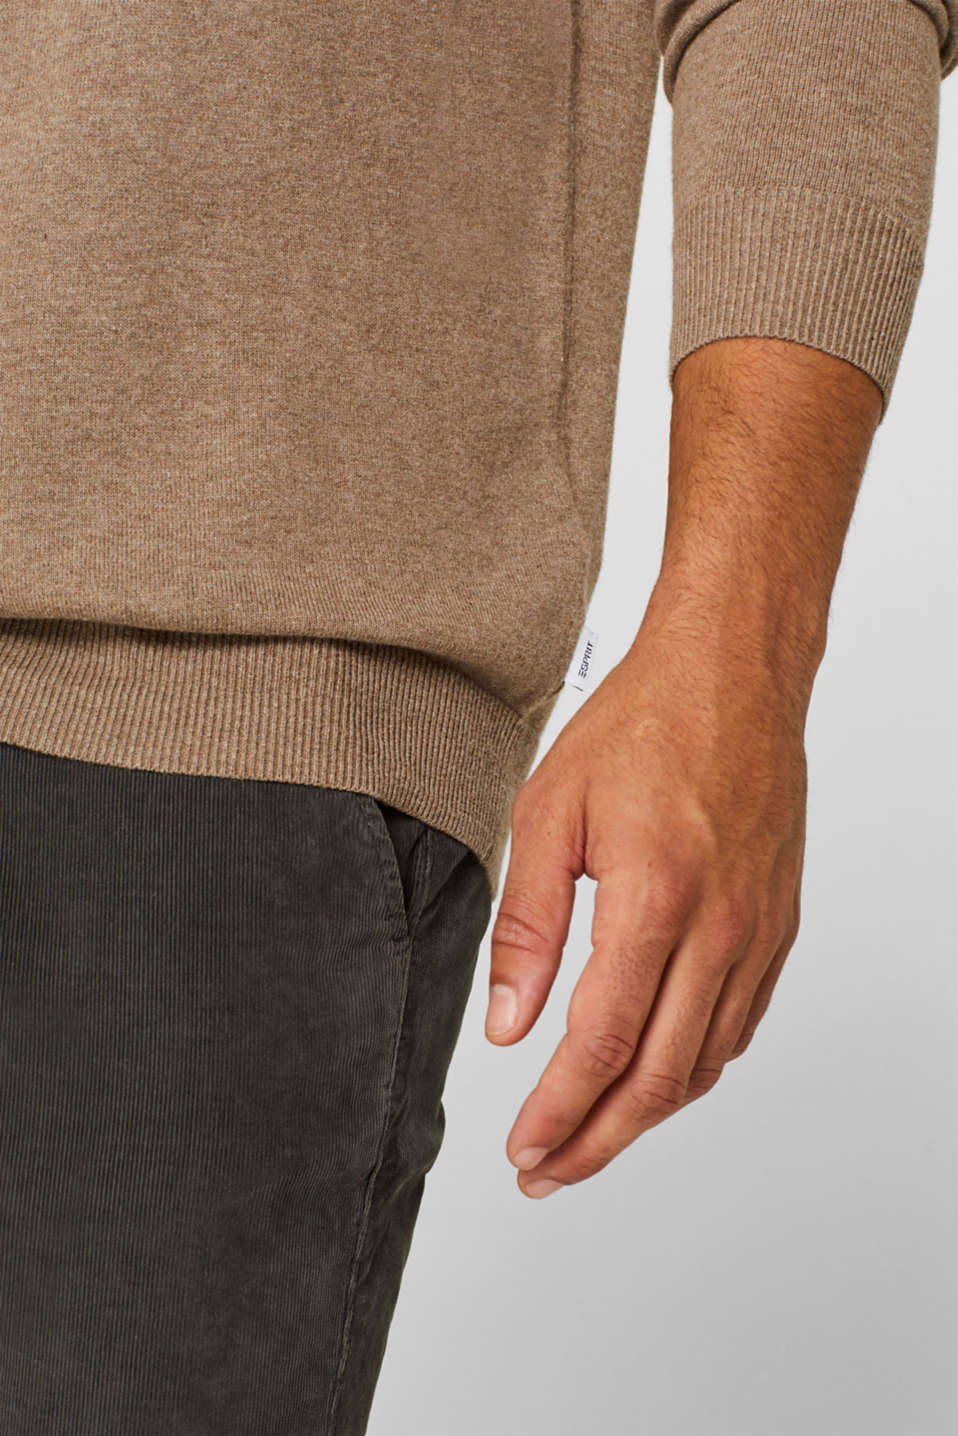 With cashmere: Basic style jumper, TAUPE, detail image number 2